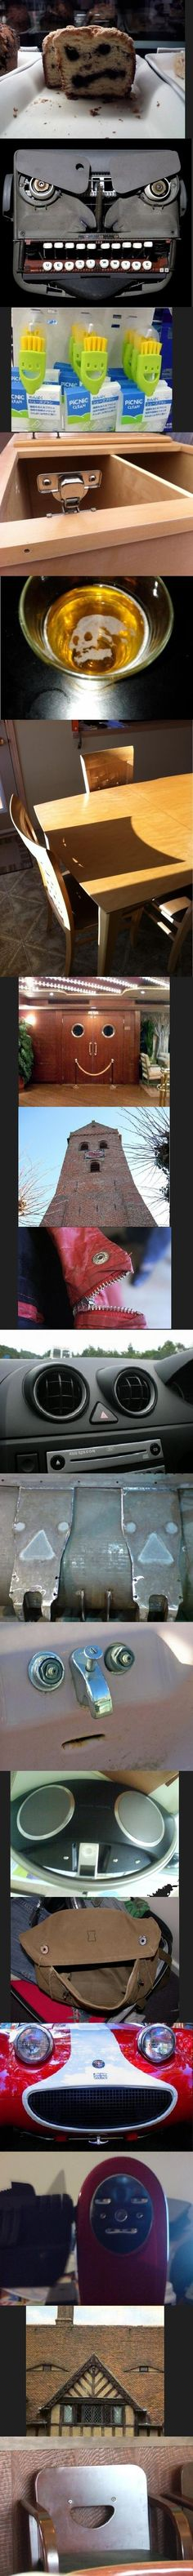 Hilarious Pictures of the week, 64 pics. Faces Found In Objects (Compilation)